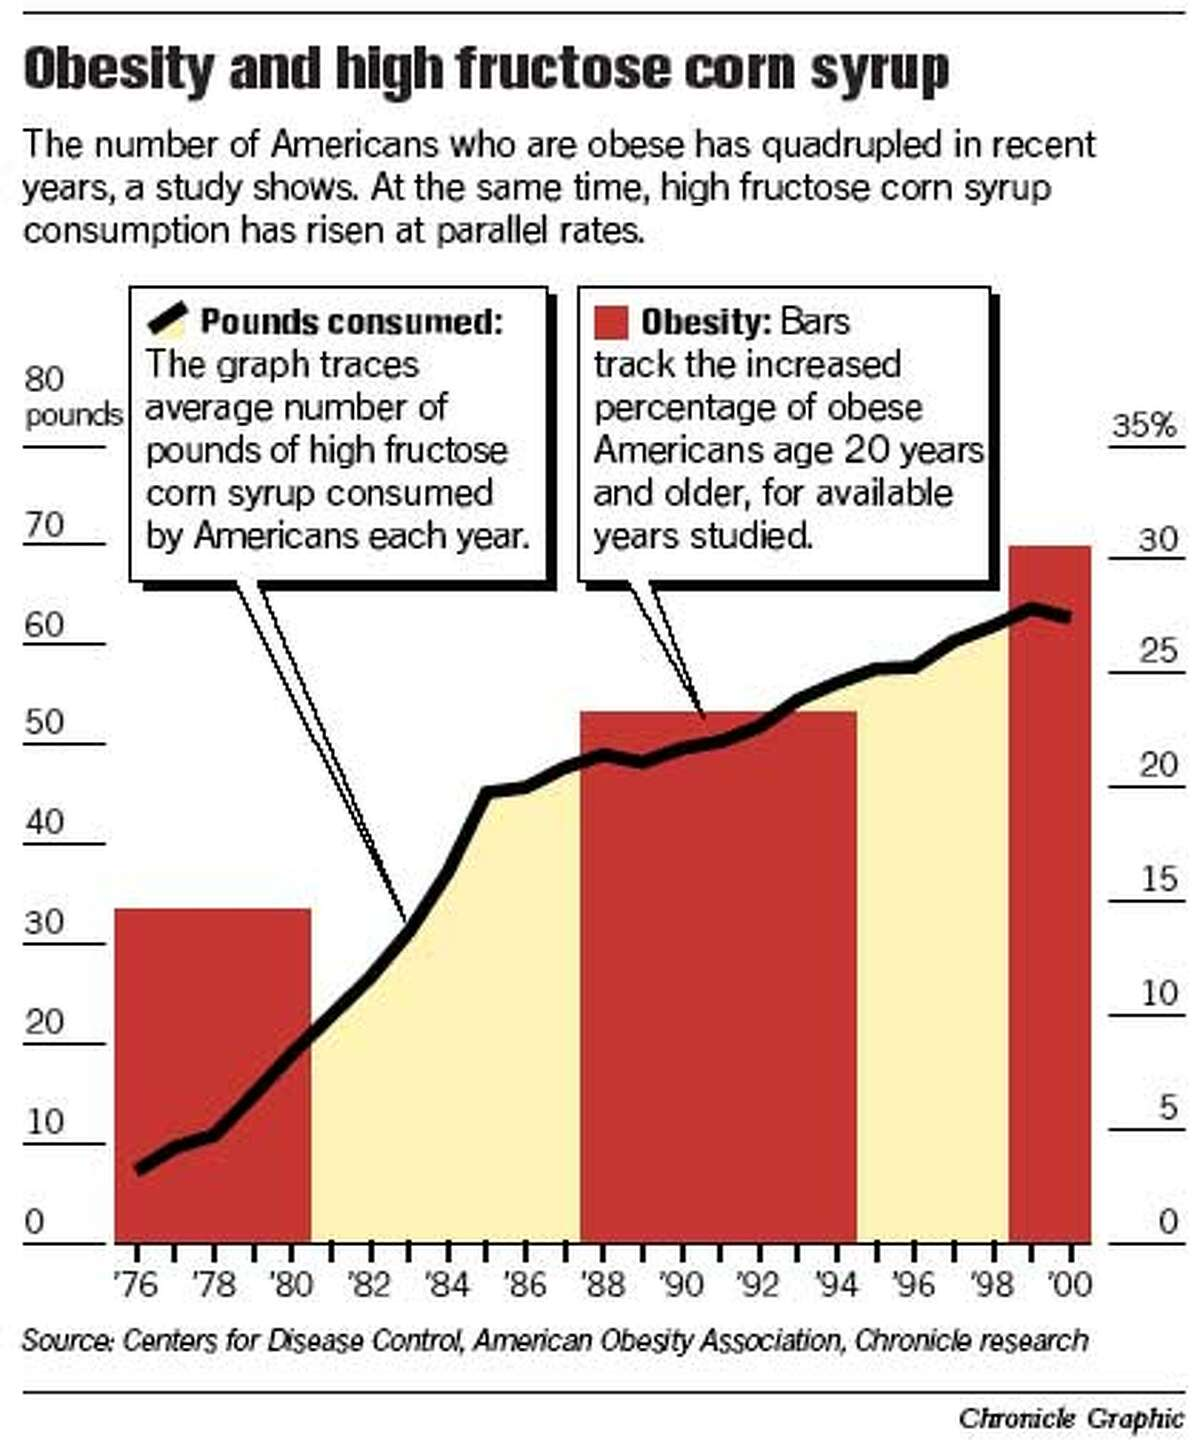 Obesity and high fructose corn syrup. Chronicle Graphic